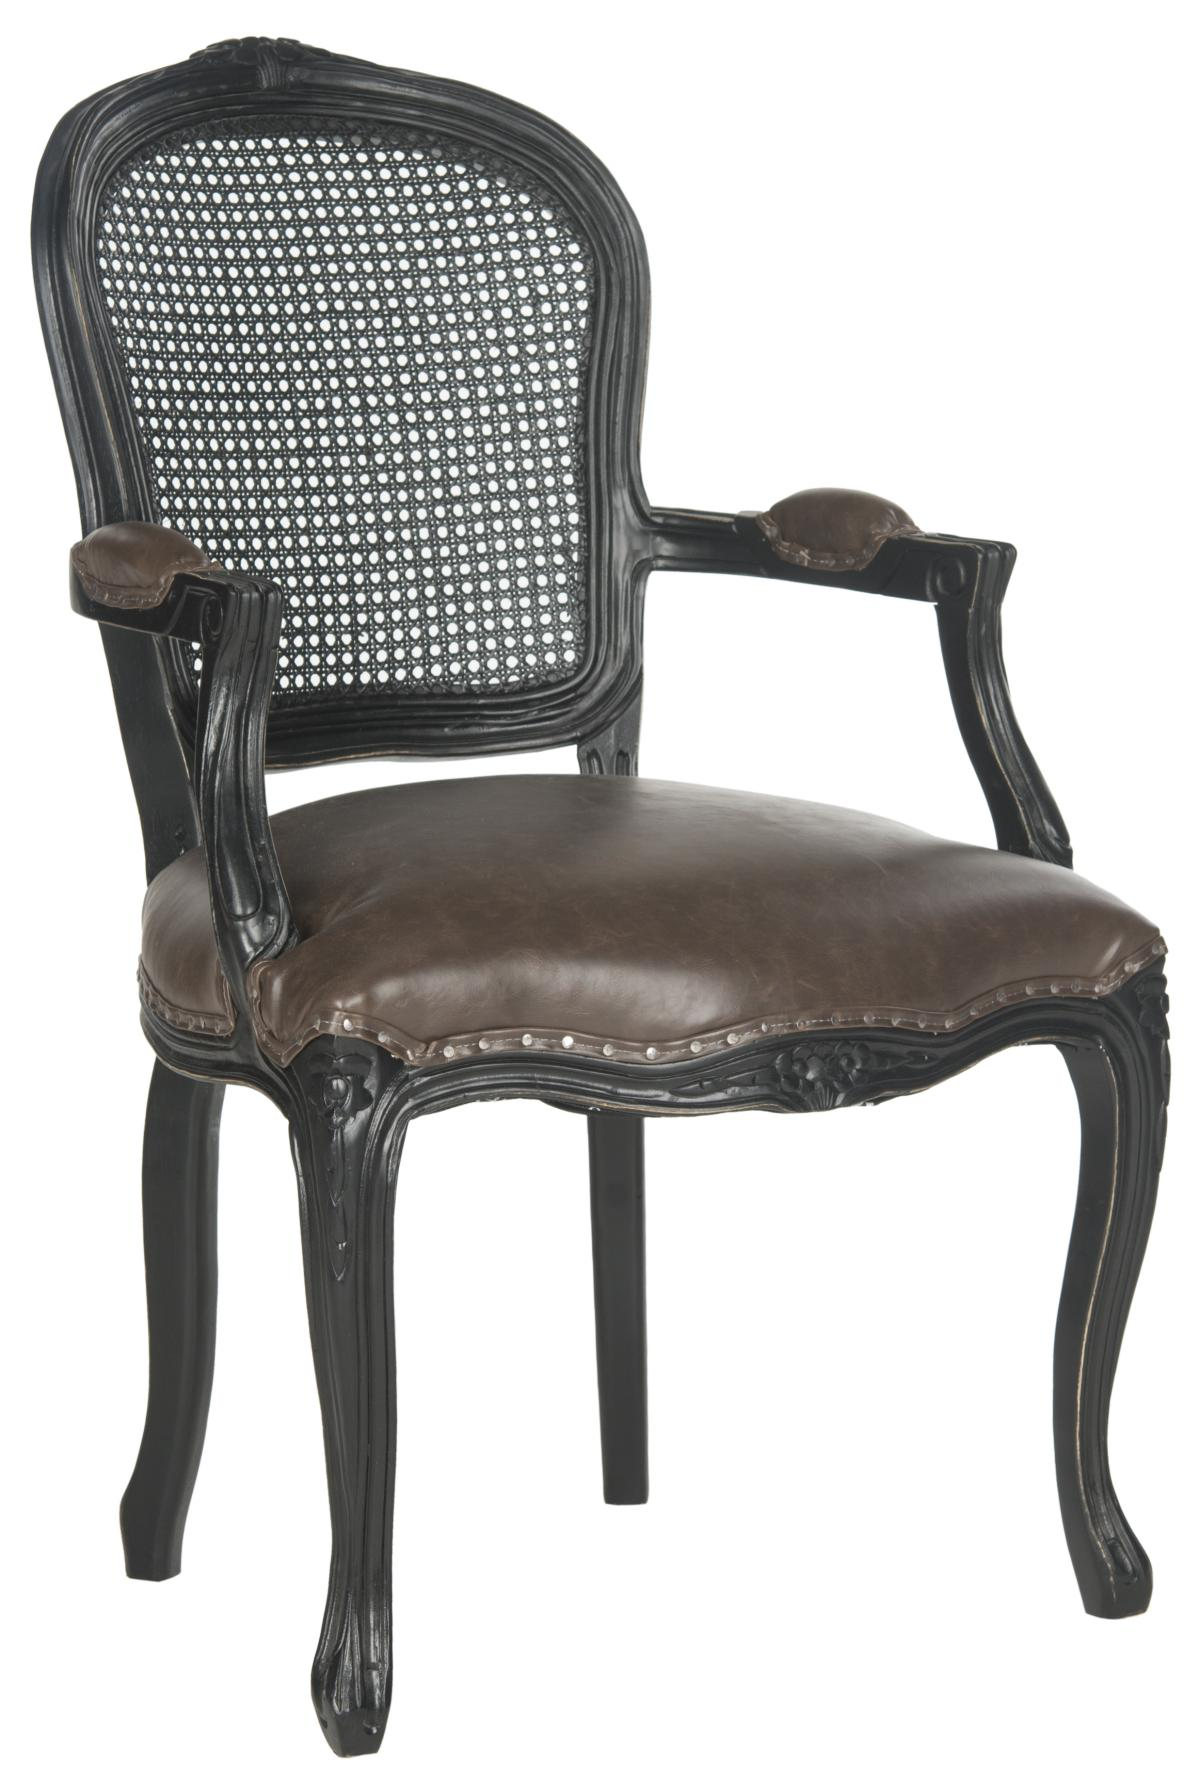 Image of: Antique Safavieh Dining Chairs